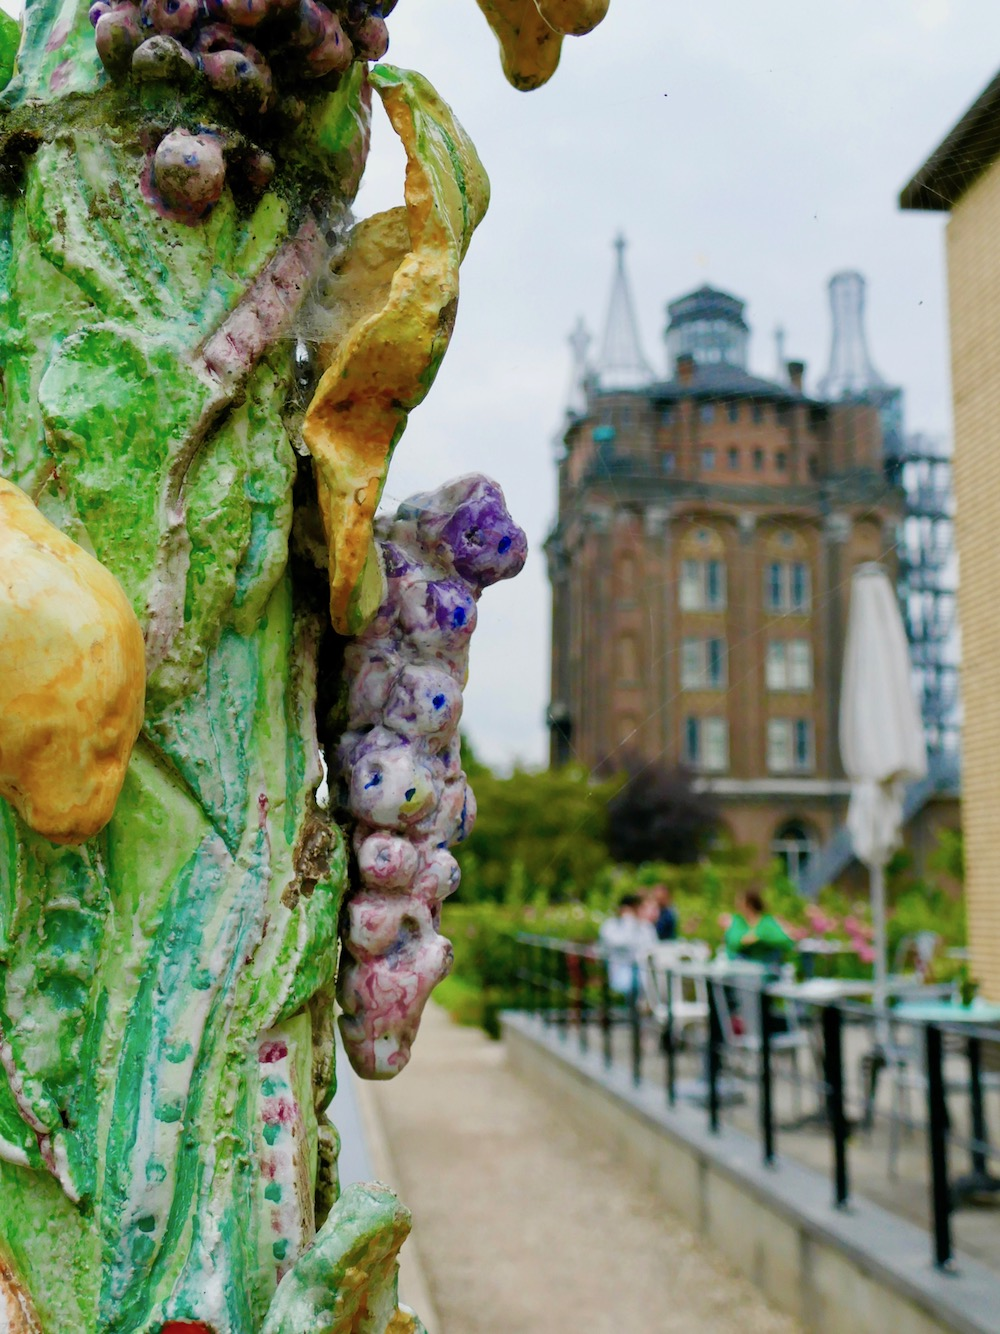 Sculpture and the water tower of Villa Augustus |curlytraveller.com